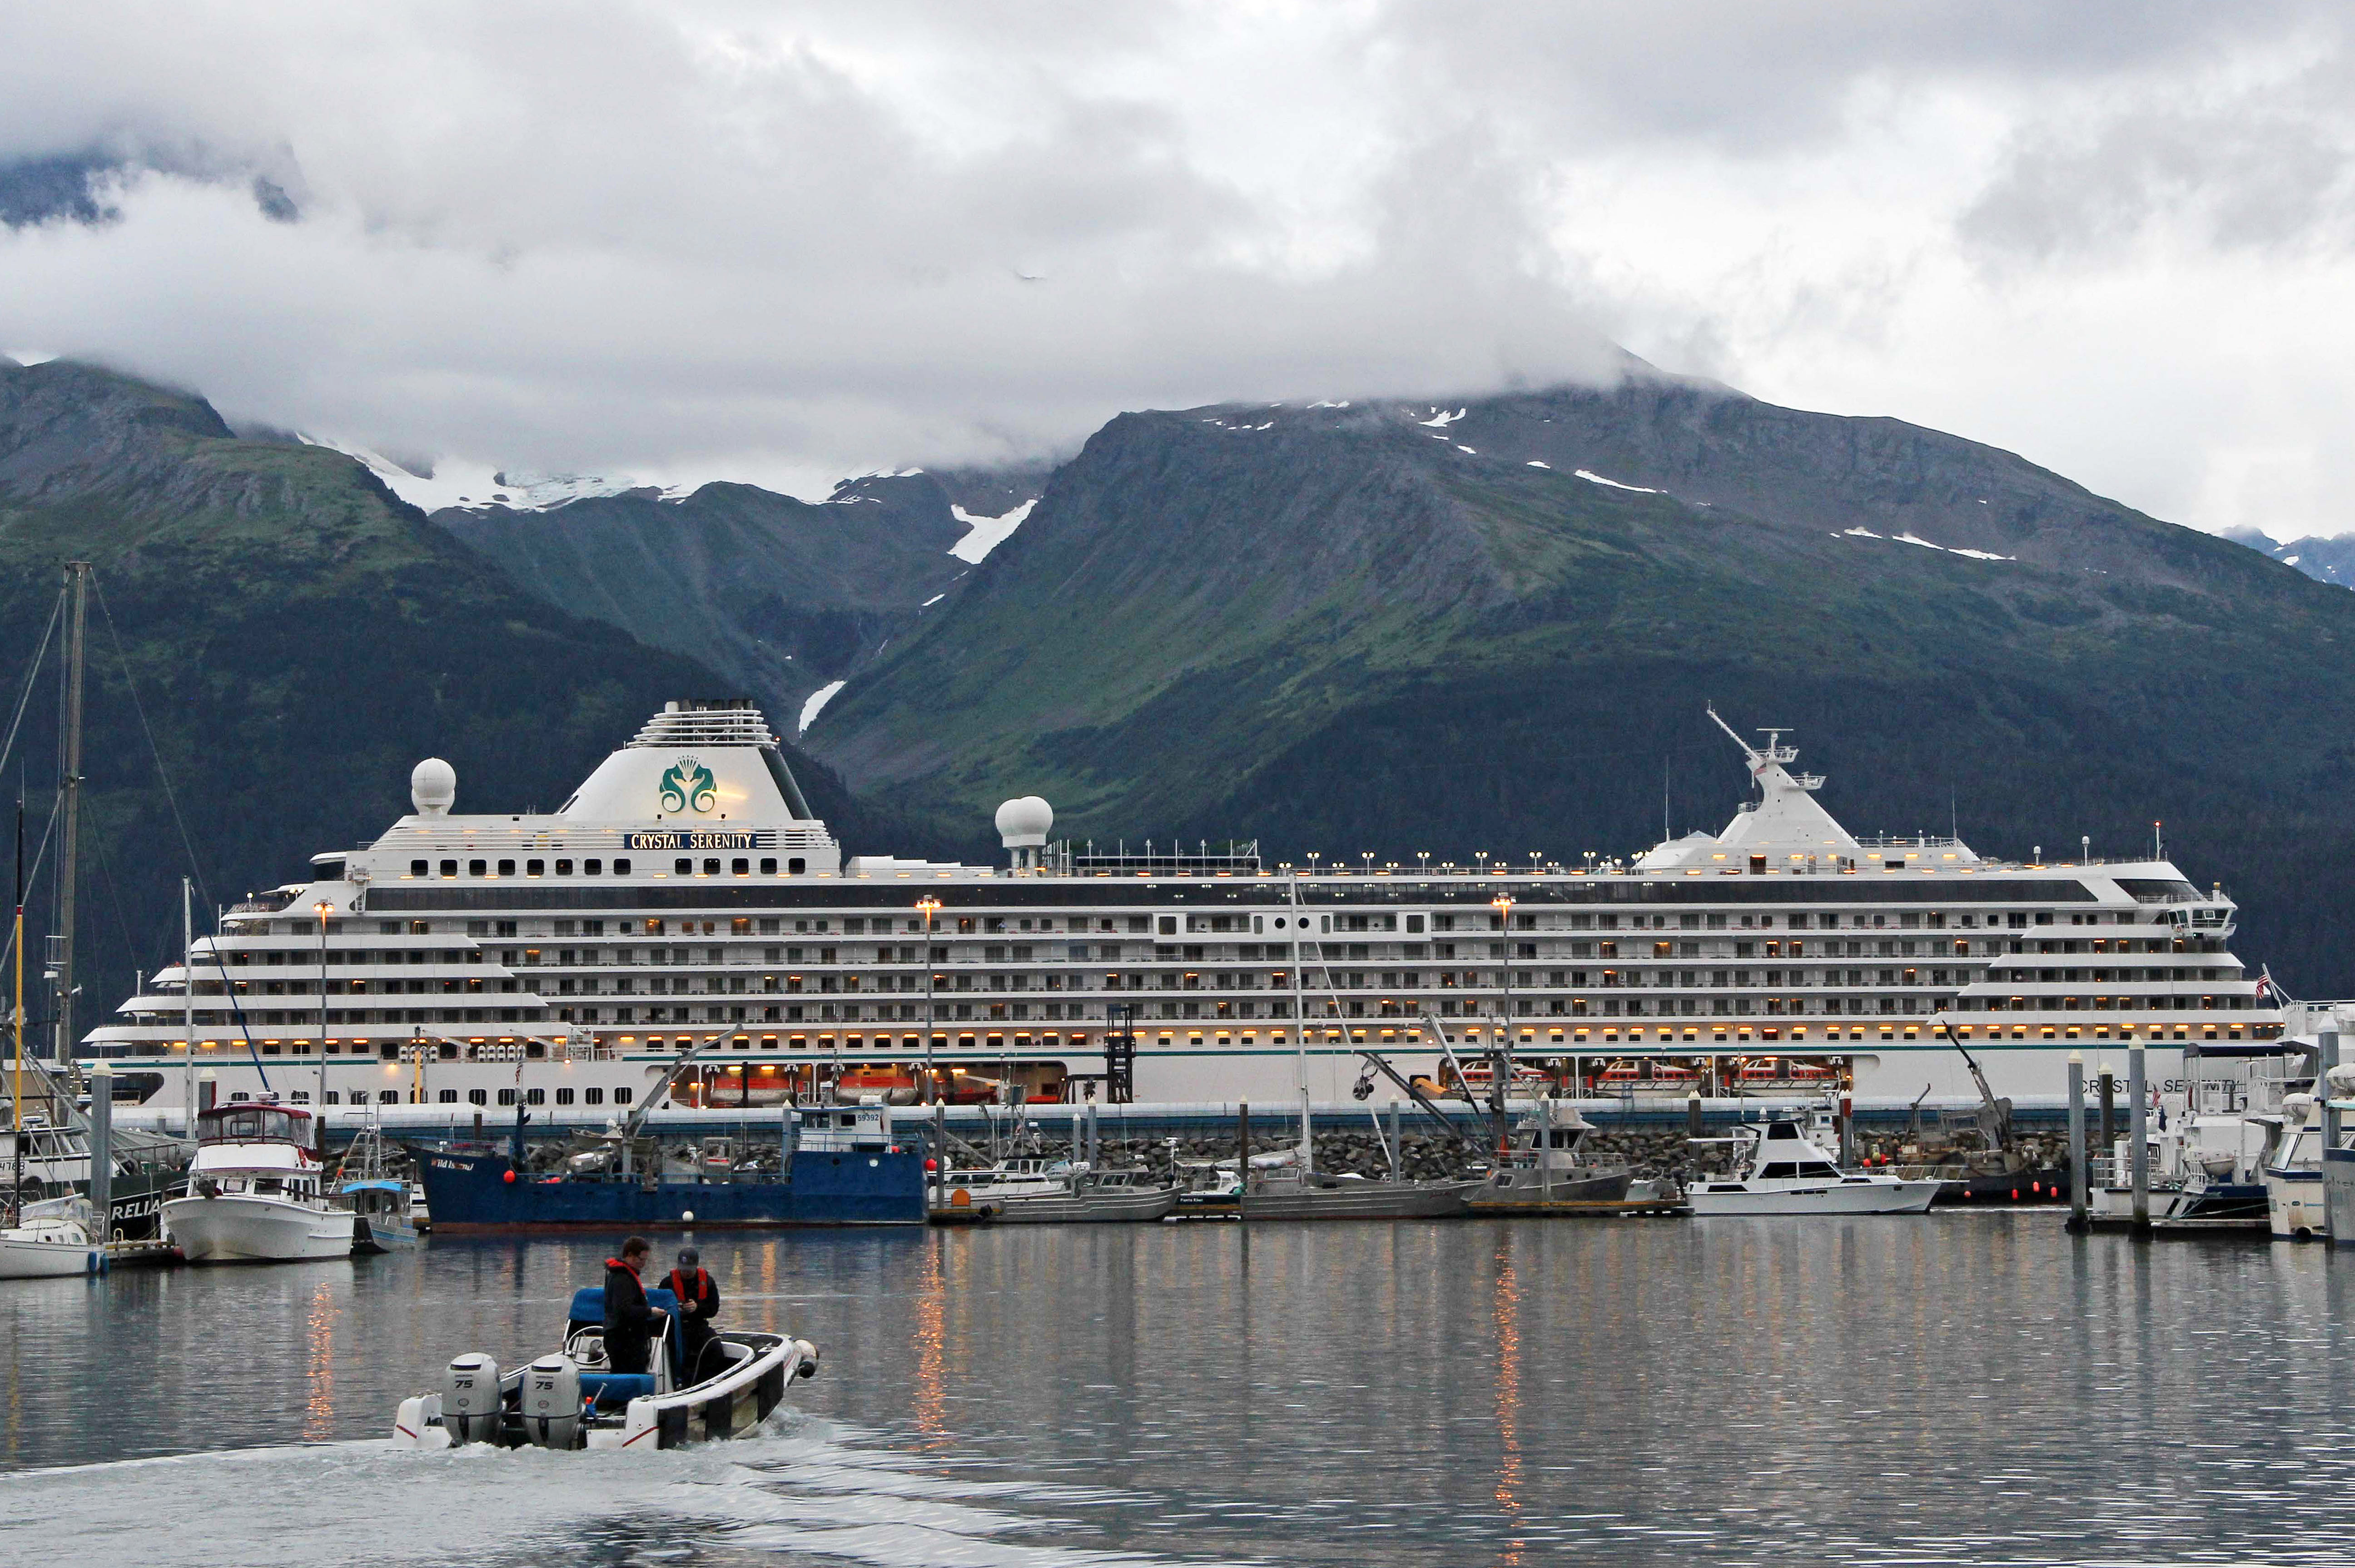 In Warmer Climate, A Luxury Cruise Sets Sail Through Northwest Passage